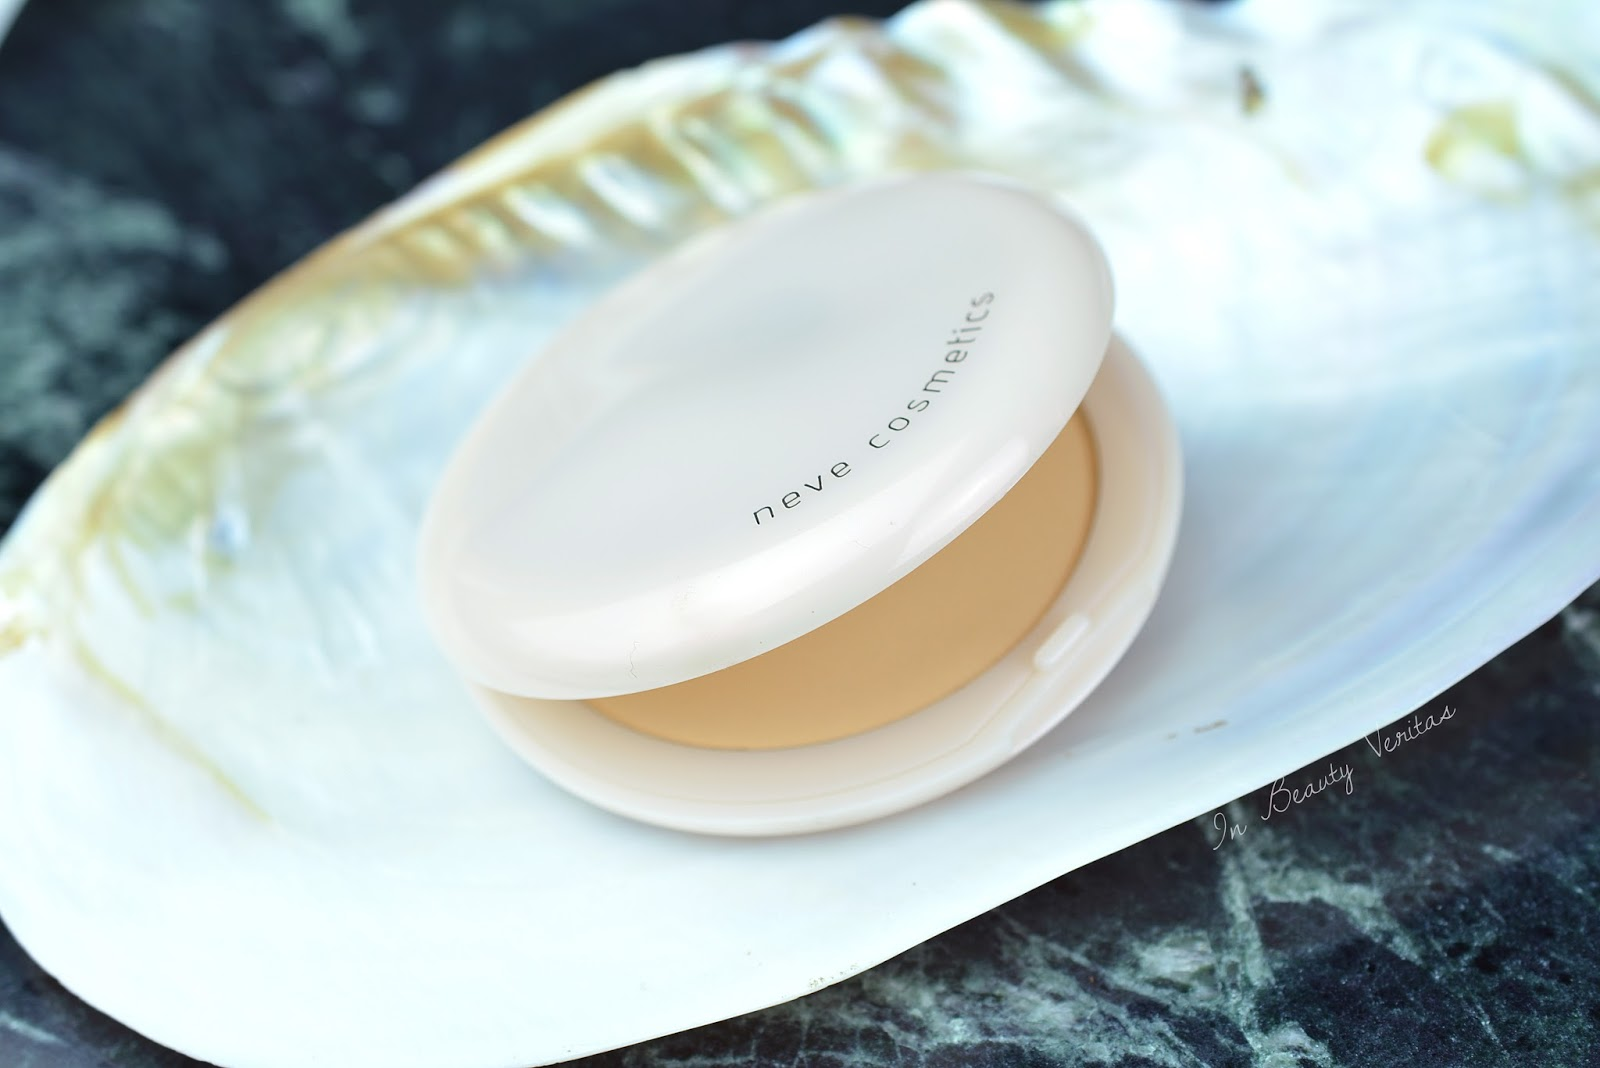 neve cosmetics alabaster touch review, recensione cipria nevecosmetics, swatch cipria nevecosmetics, swatch alabaster touch nevecosmetics, swatch cipria alabaster touch nevecosmetics,